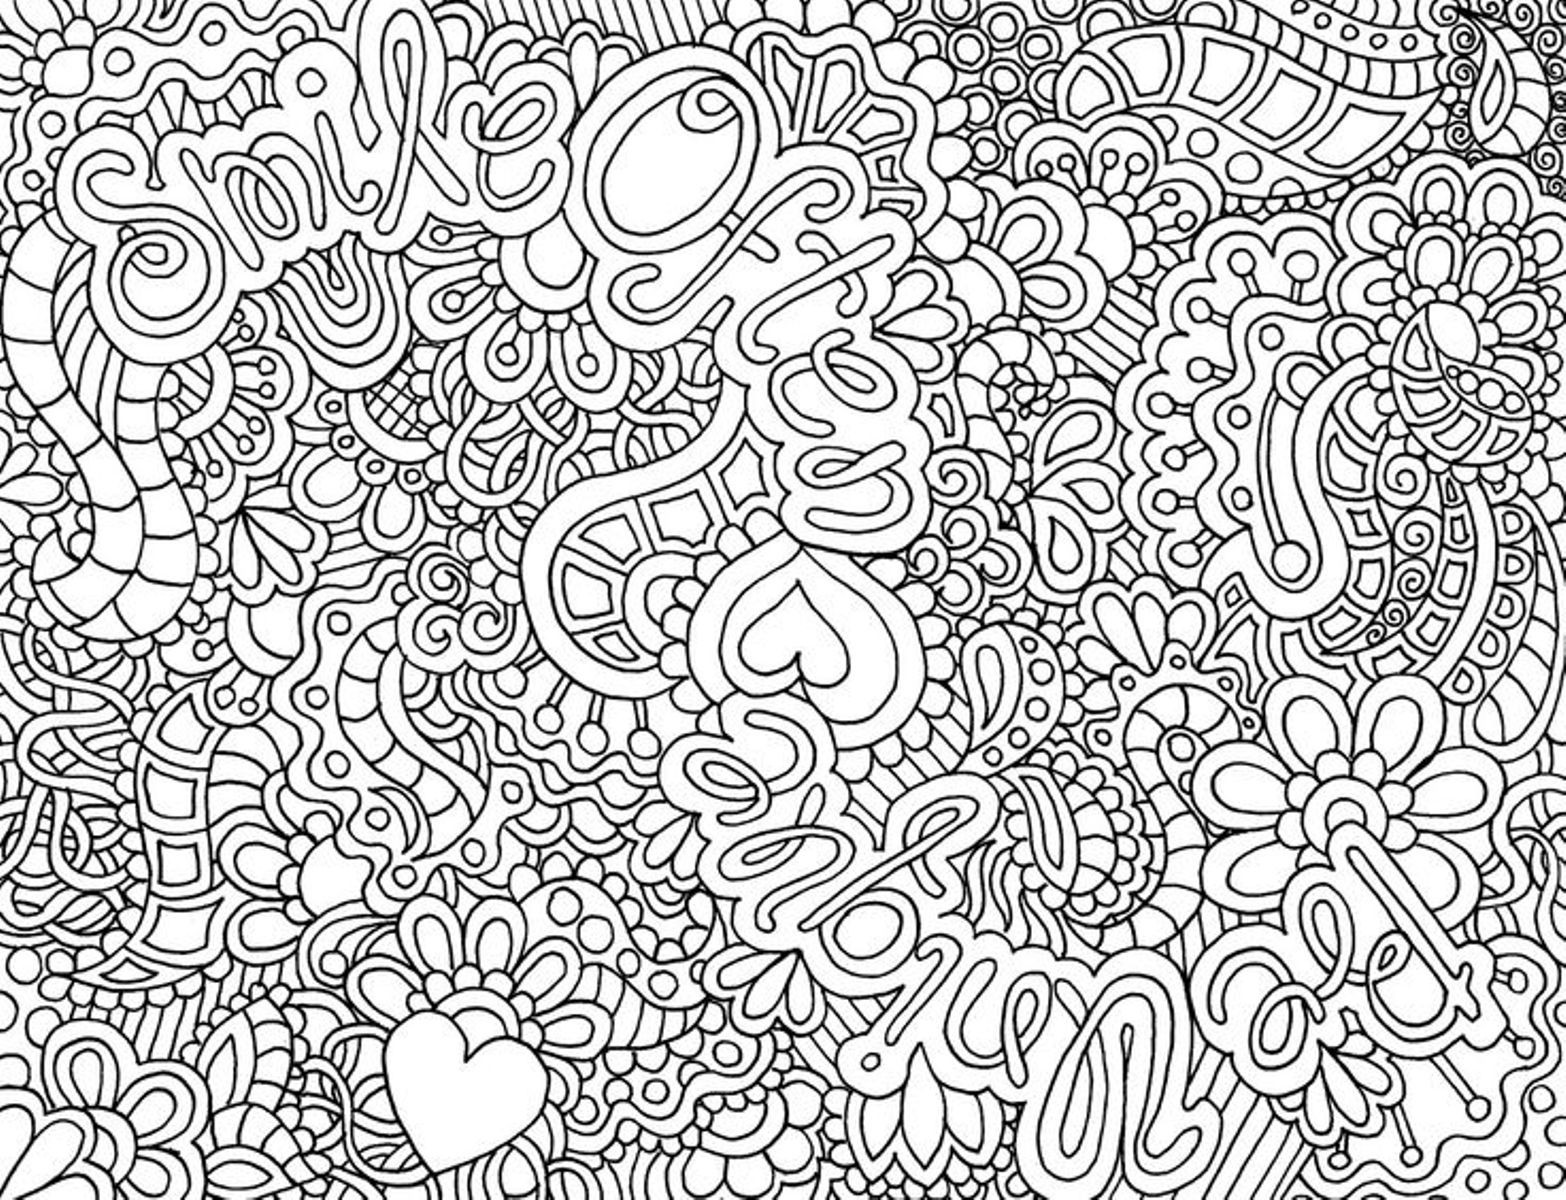 Coloring Pages For Adults Difficult  Difficult Hard Coloring Pages Printable